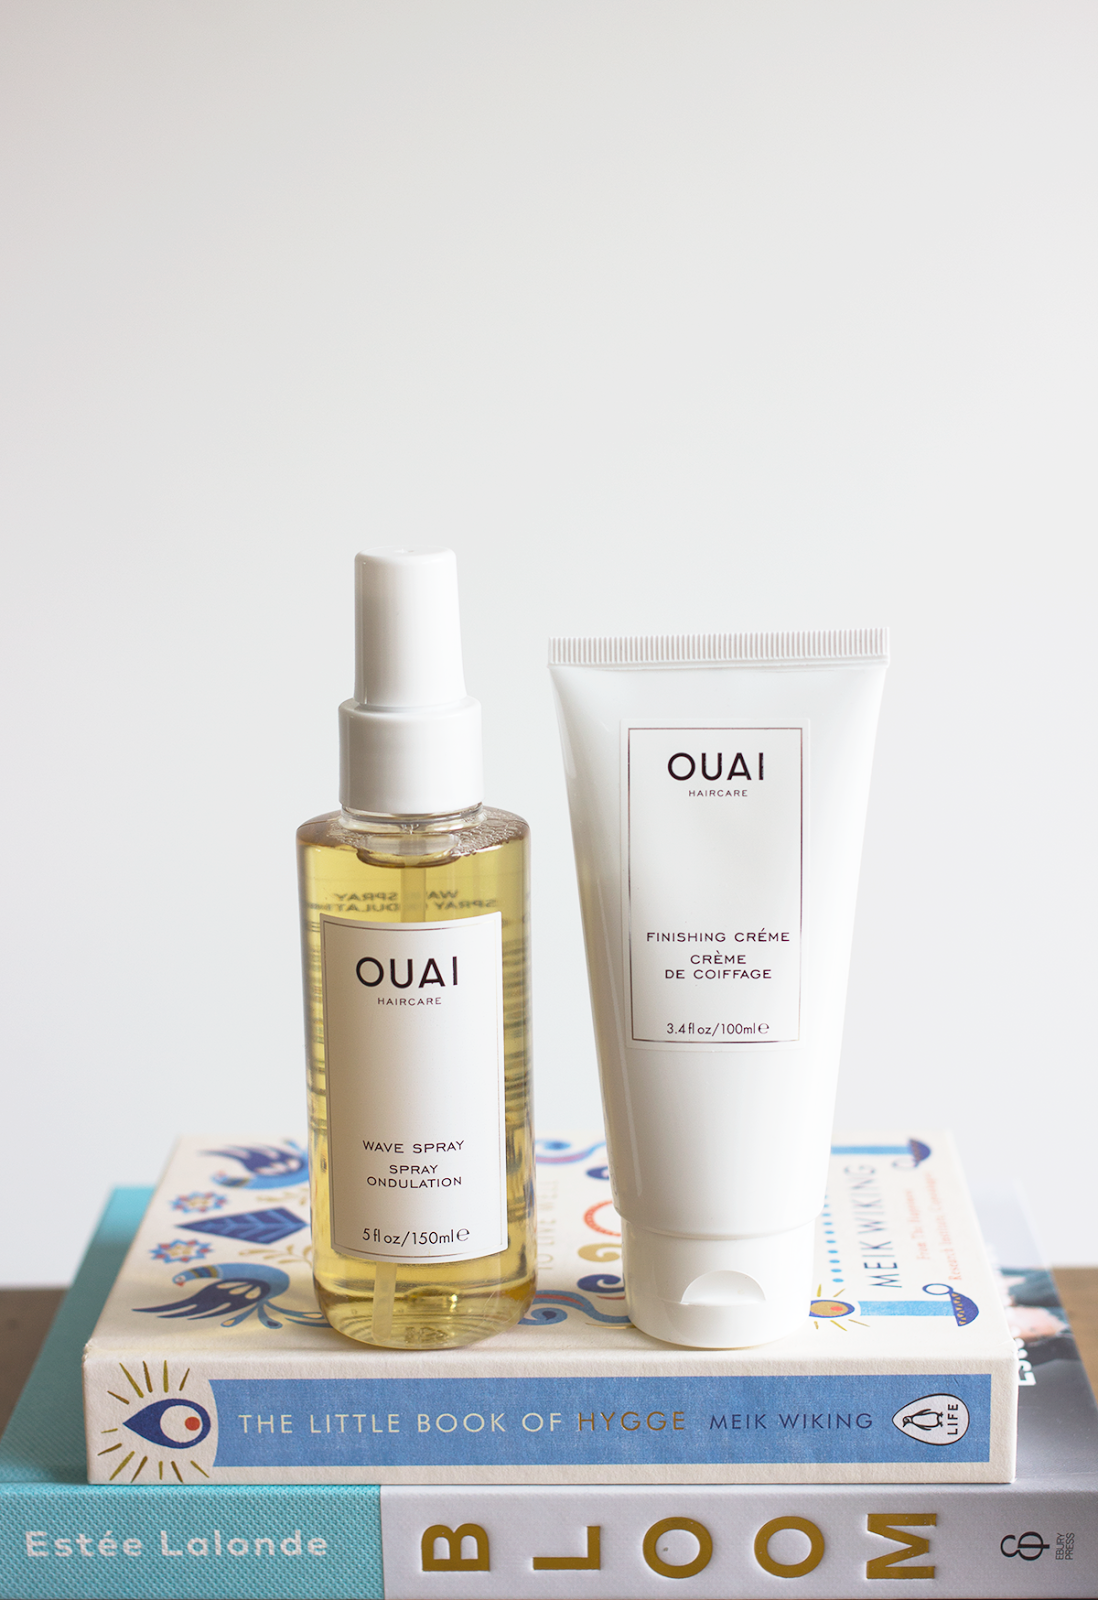 Ouai Haircare First impressions